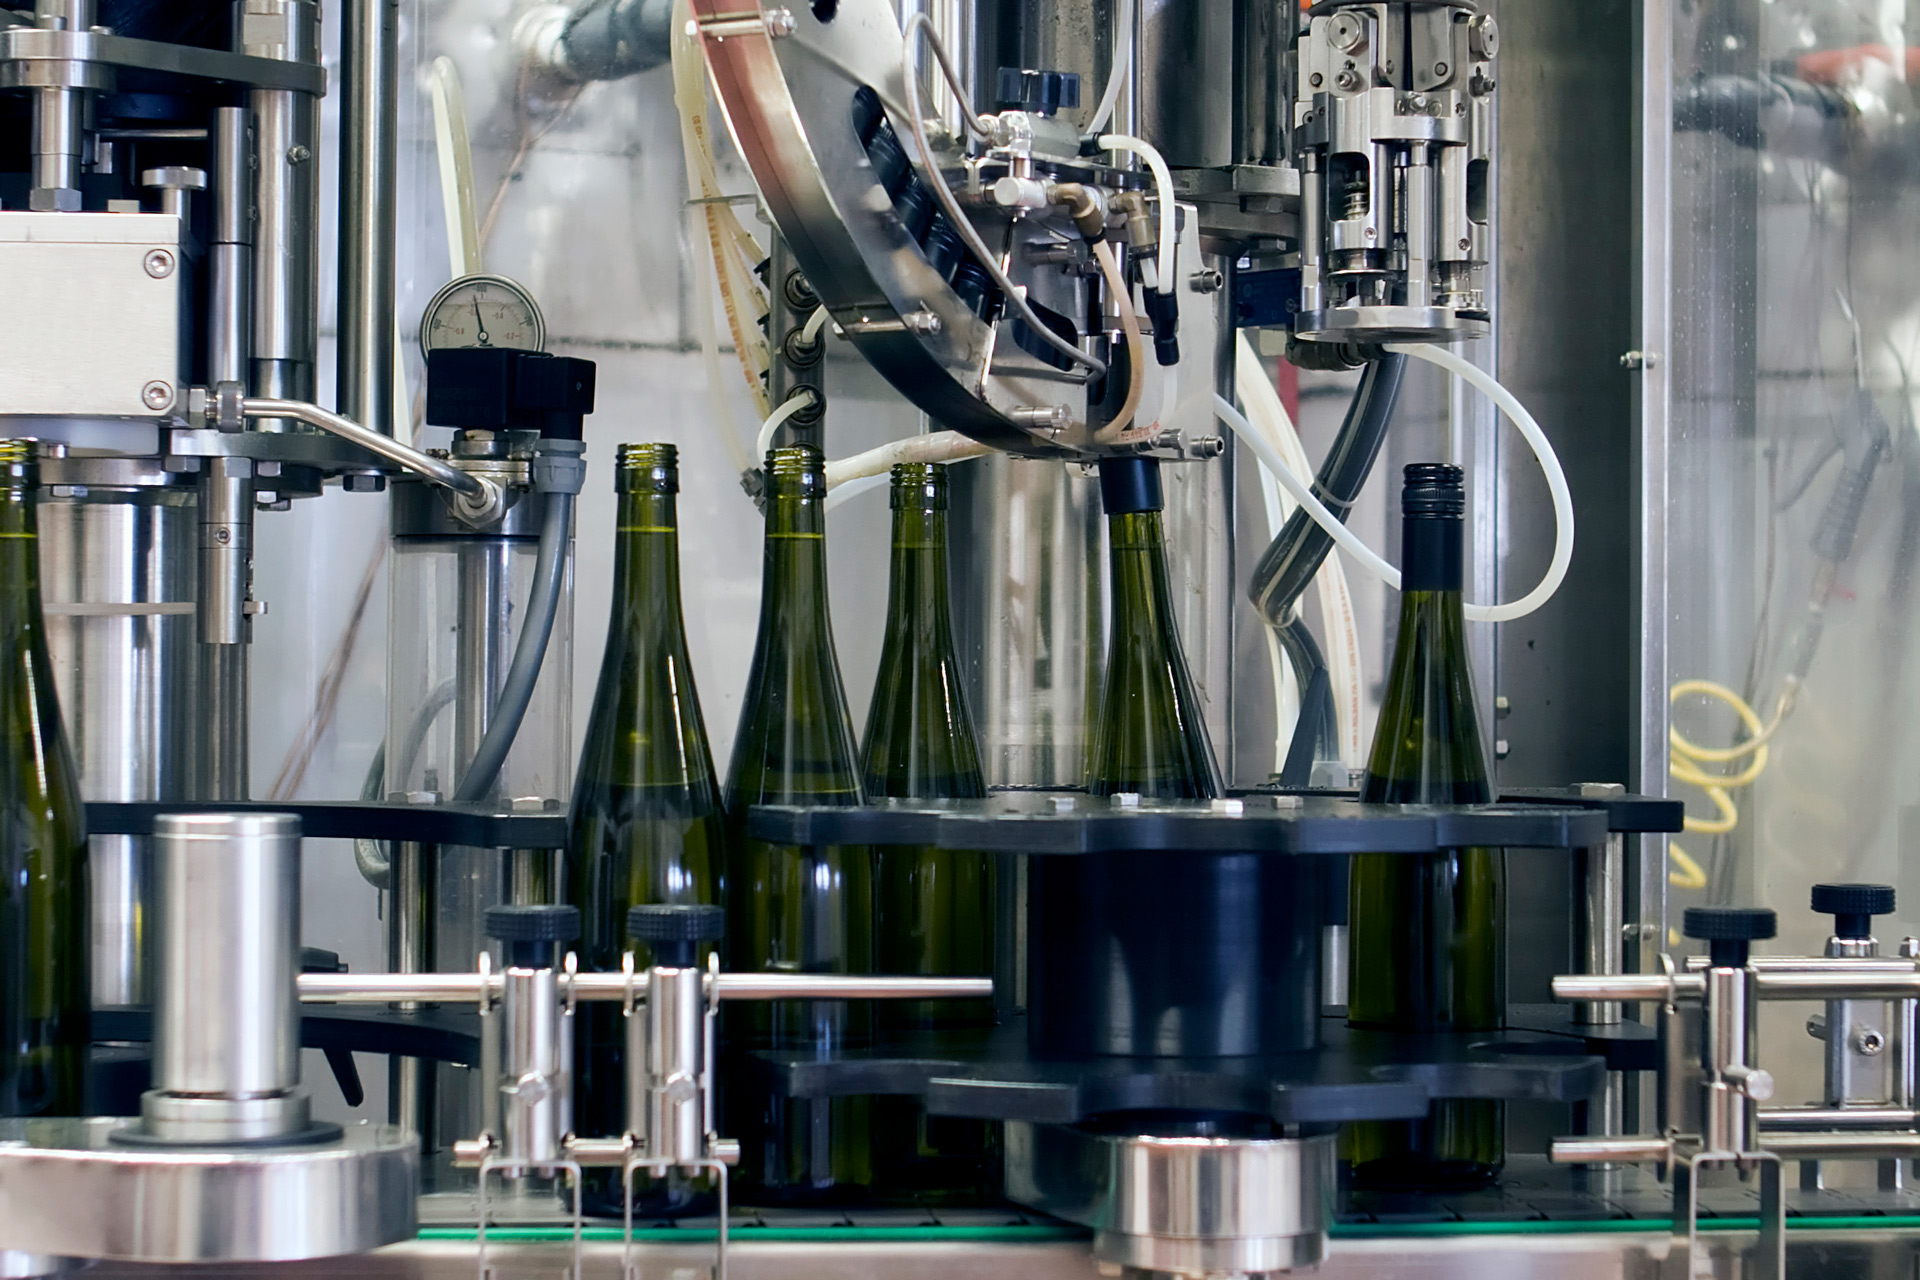 Wine bottles being filled by a machine